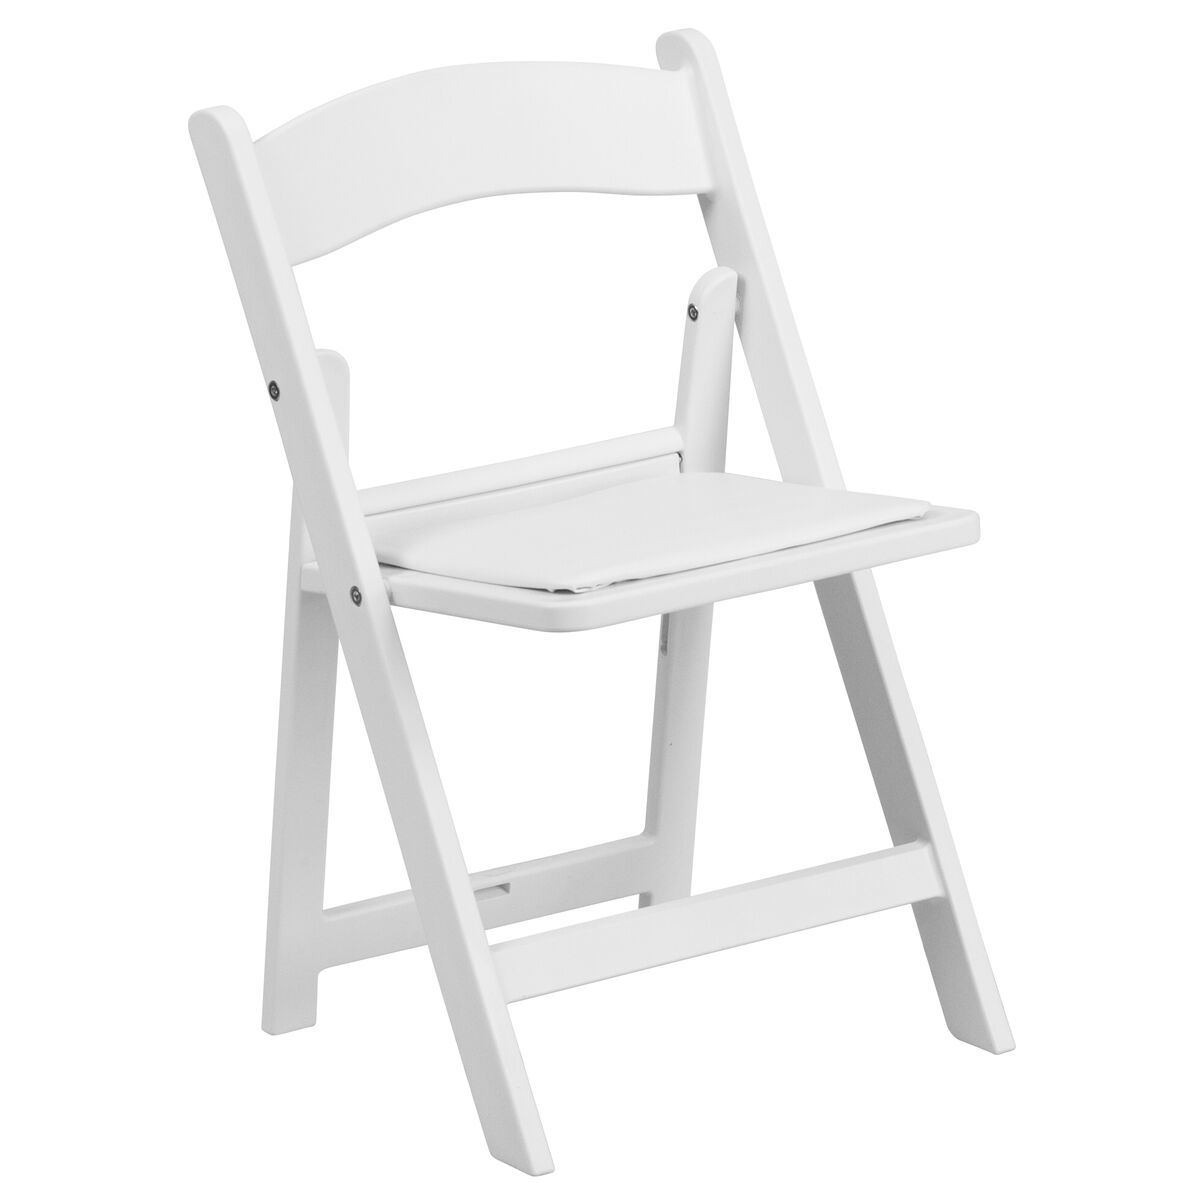 Awesome Kids White Resin Folding Chair With White Vinyl Padded Seat Uwap Interior Chair Design Uwaporg